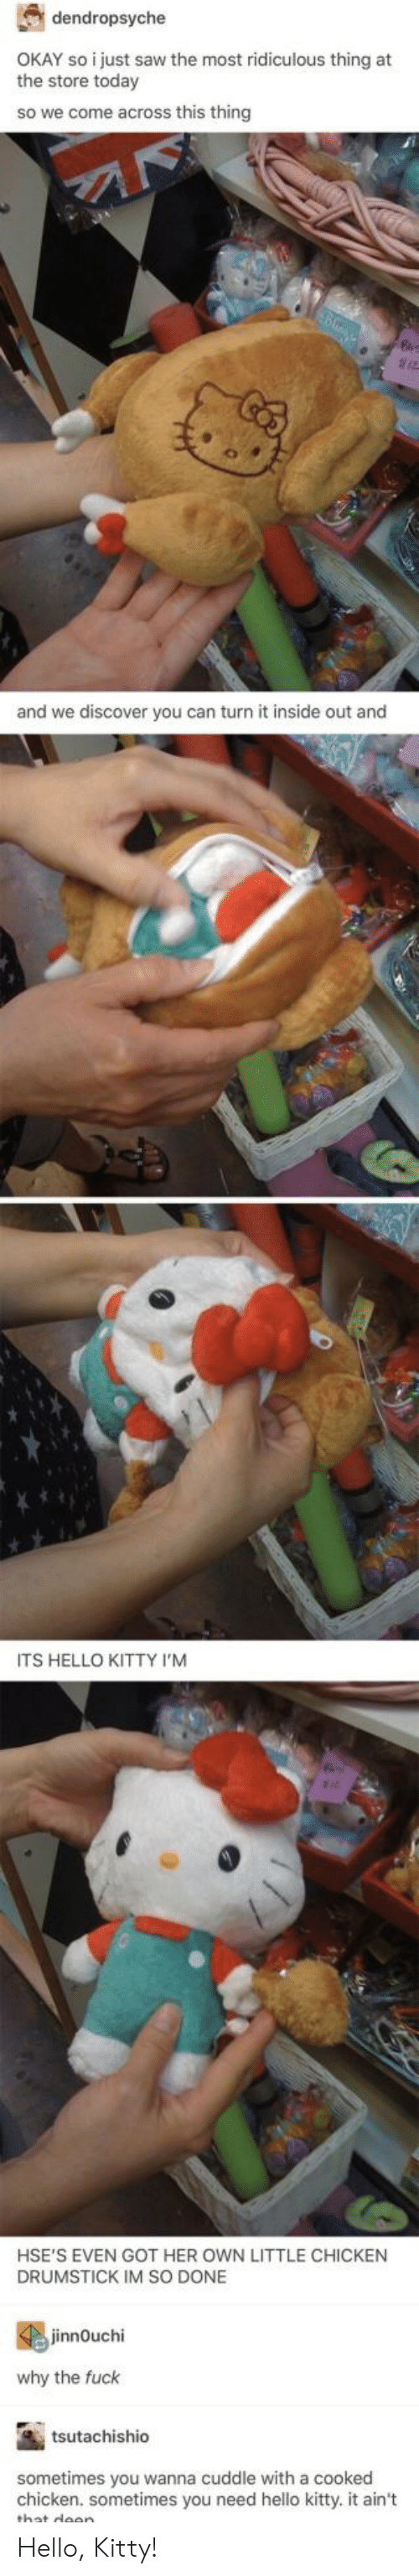 Im So Done: dendropsyche  OKAY so i just saw the most ridiculous thing at  the store today  so we come across this thingg  and we discover you can turn it inside out and  ITS HELLO KITTY I'M  HSE'S EVEN GOT HER OWN LITTLE CHICKEN  DRUMSTICK IM SO DONE  jinnOuchi  why the fuck  tsutachishio  sometimes you wanna cuddle with a cooked  chicken. sometimes you need hello kitty. it ain't  wllo kittyit an Hello, Kitty!